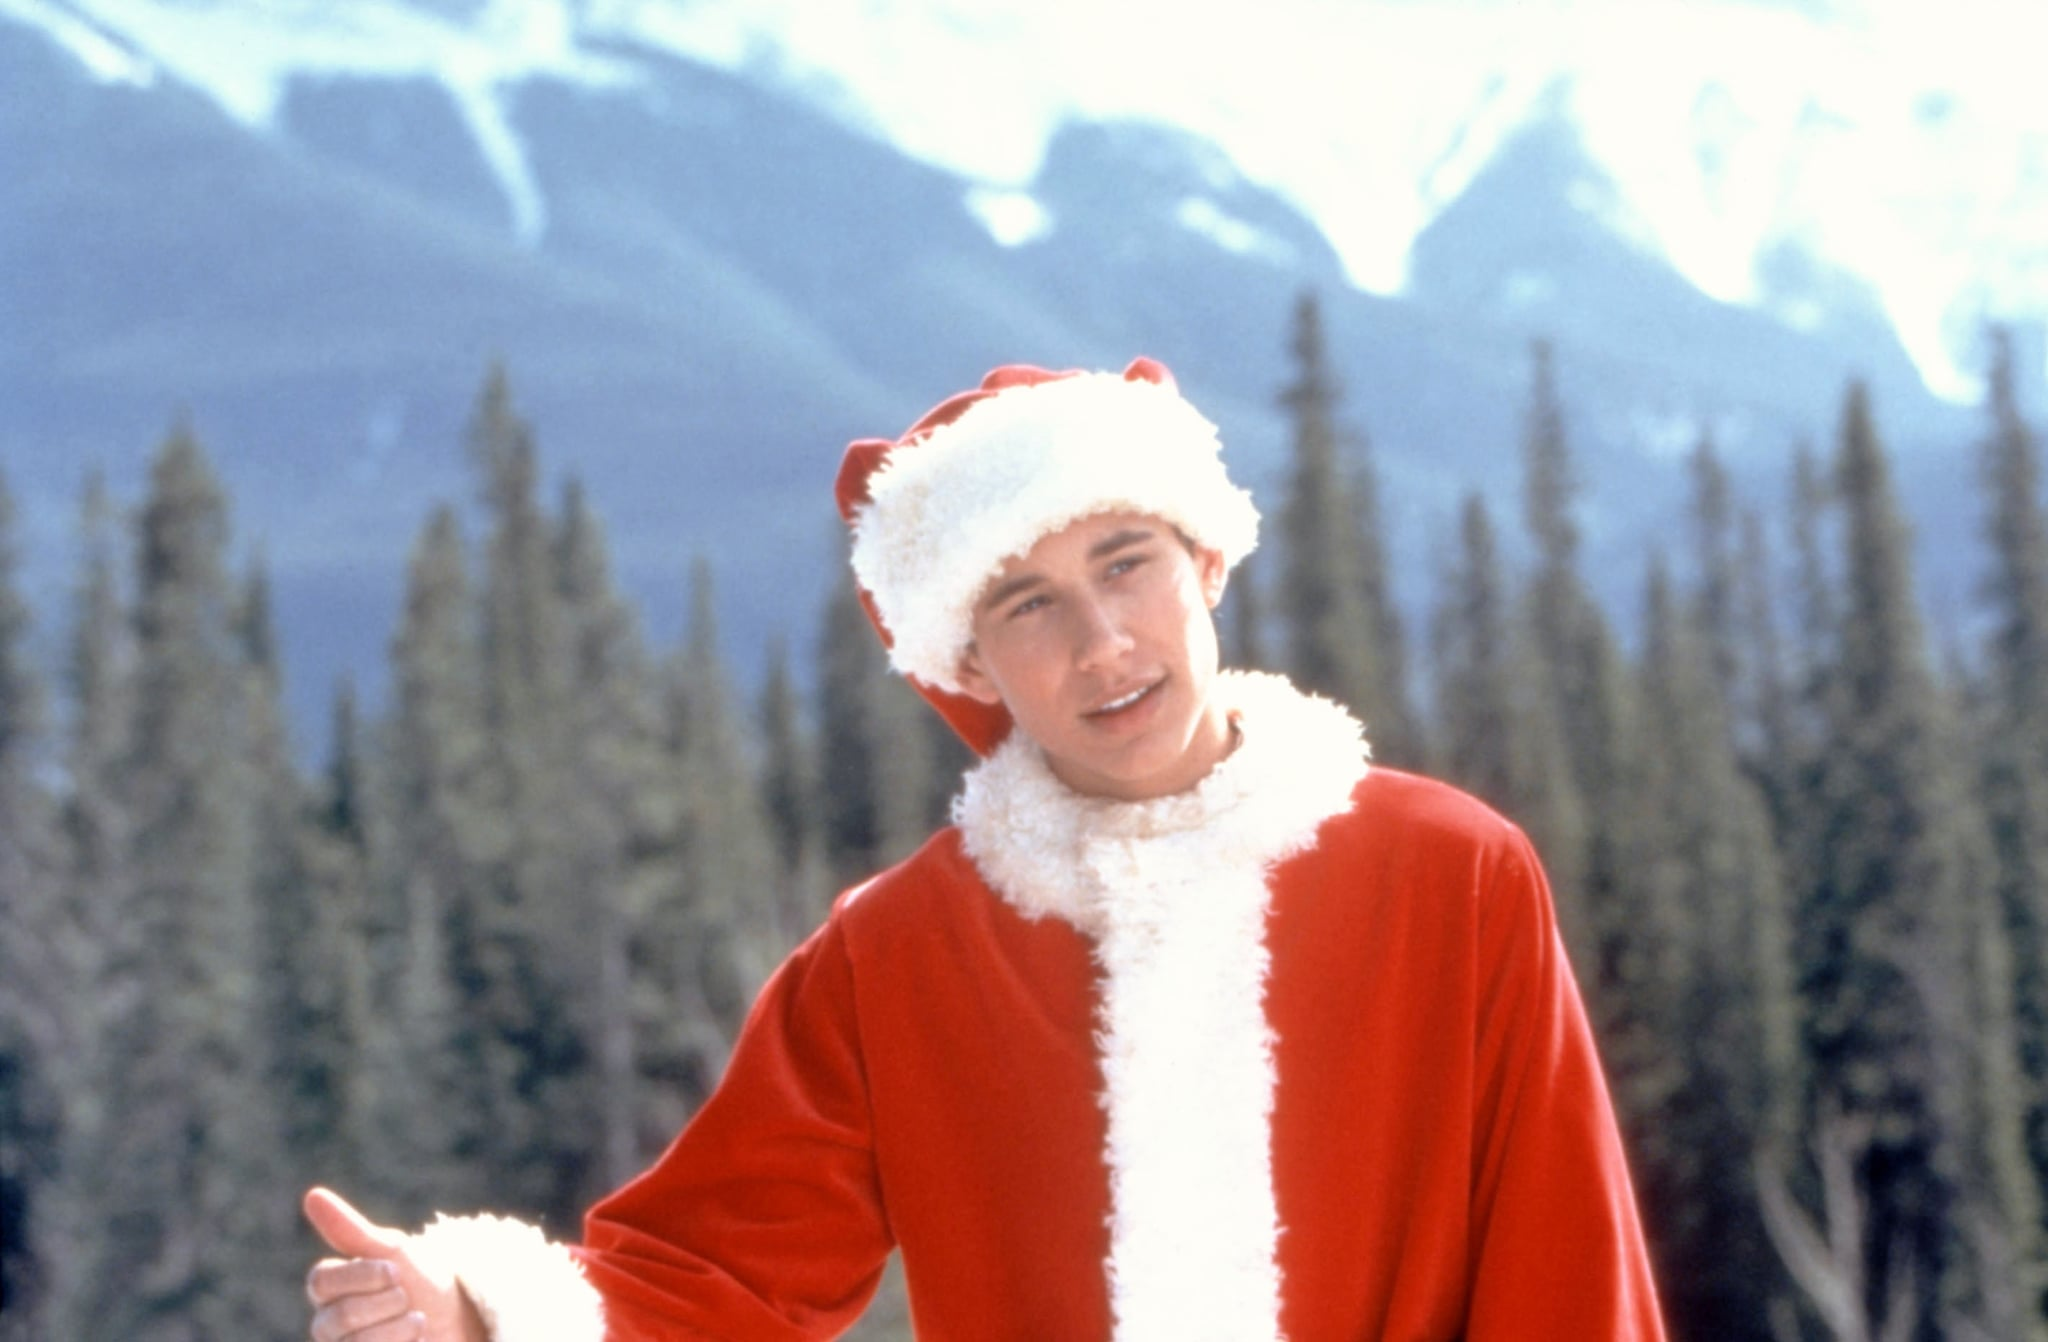 Ill Be Home For Christmas 1998.I Ll Be Home For Christmas 1998 90s Movies That Will